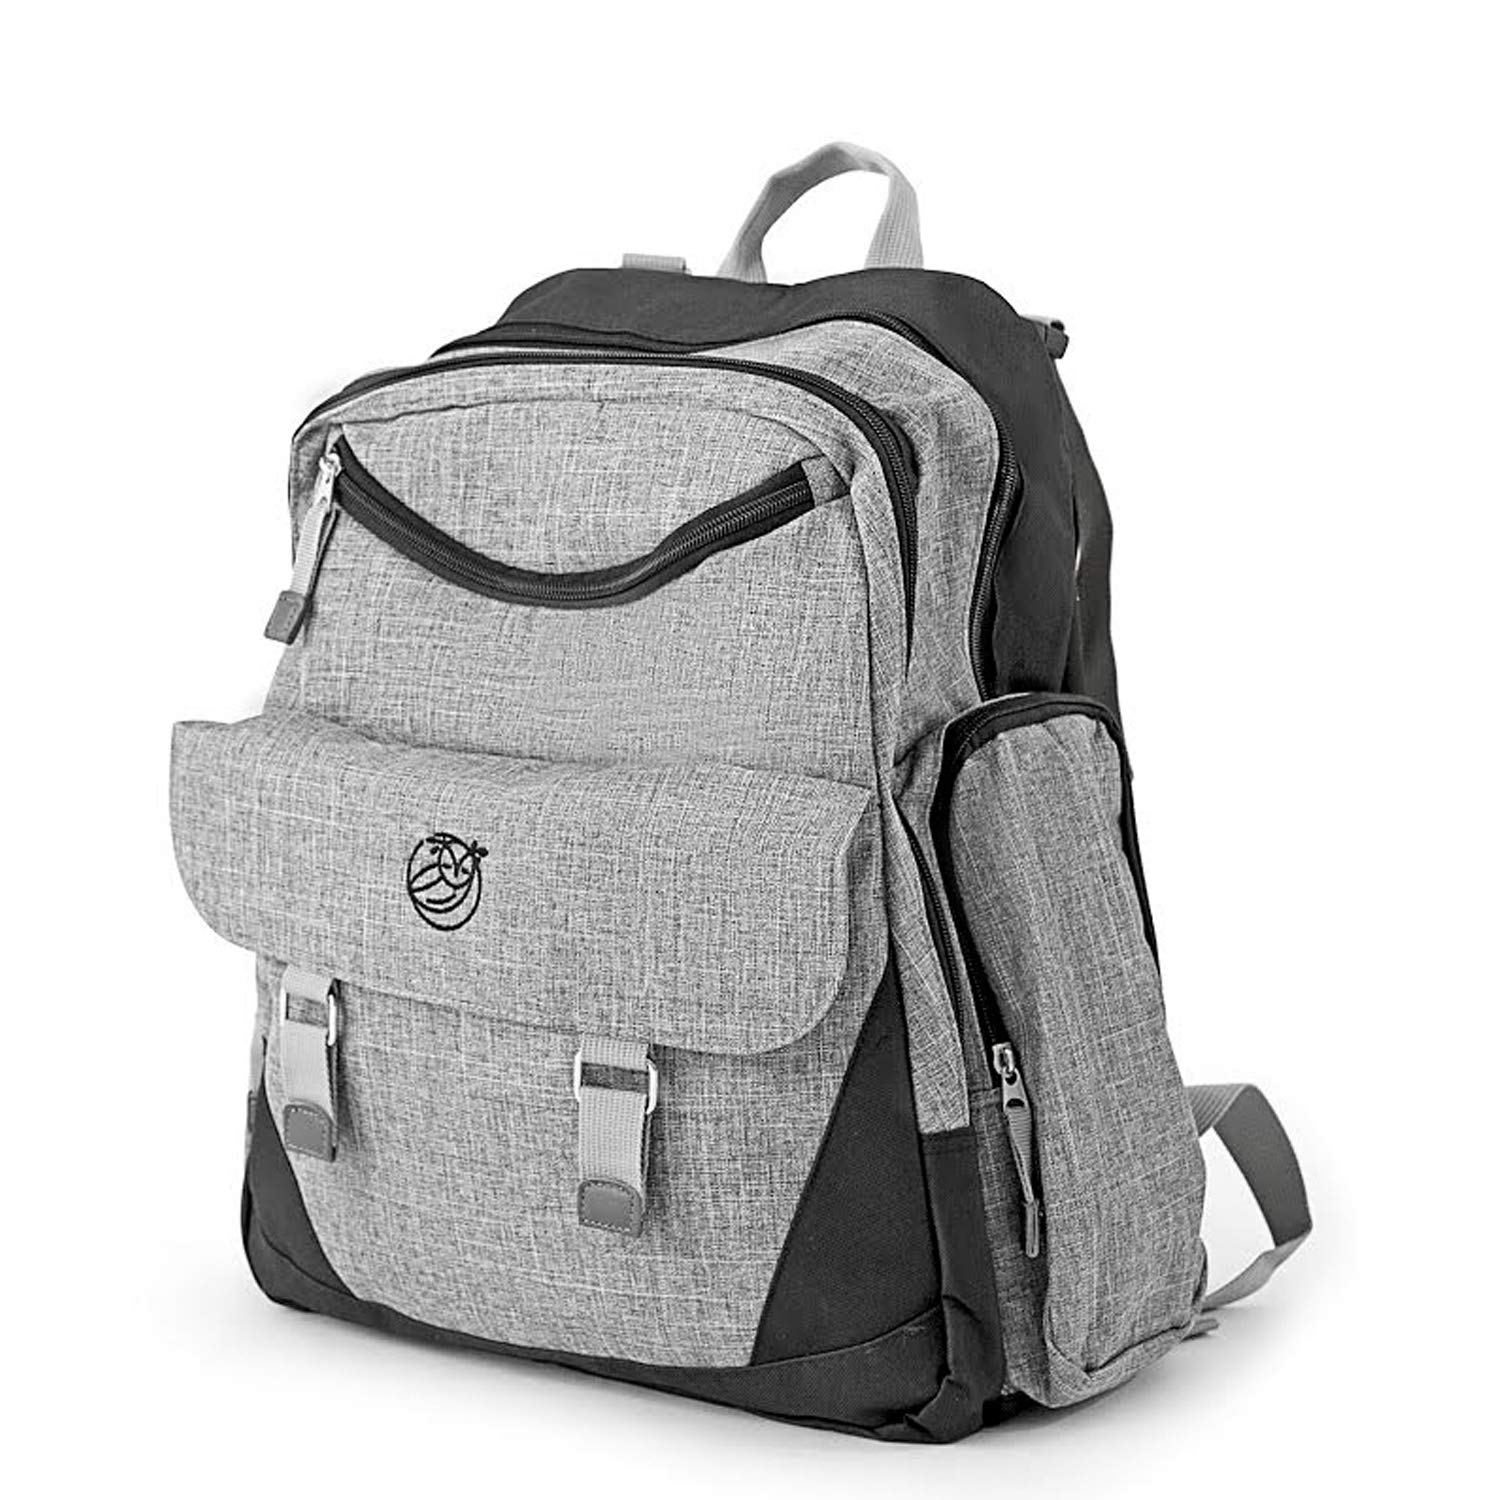 6975a5eb773d Amazon.com   Diaper Bag Backpack - Large Capacity Baby Bag for Mom or Dad -  Includes Changing Mat - Durable and Comfy for Travel - Waterproof Mens  Diaper ...